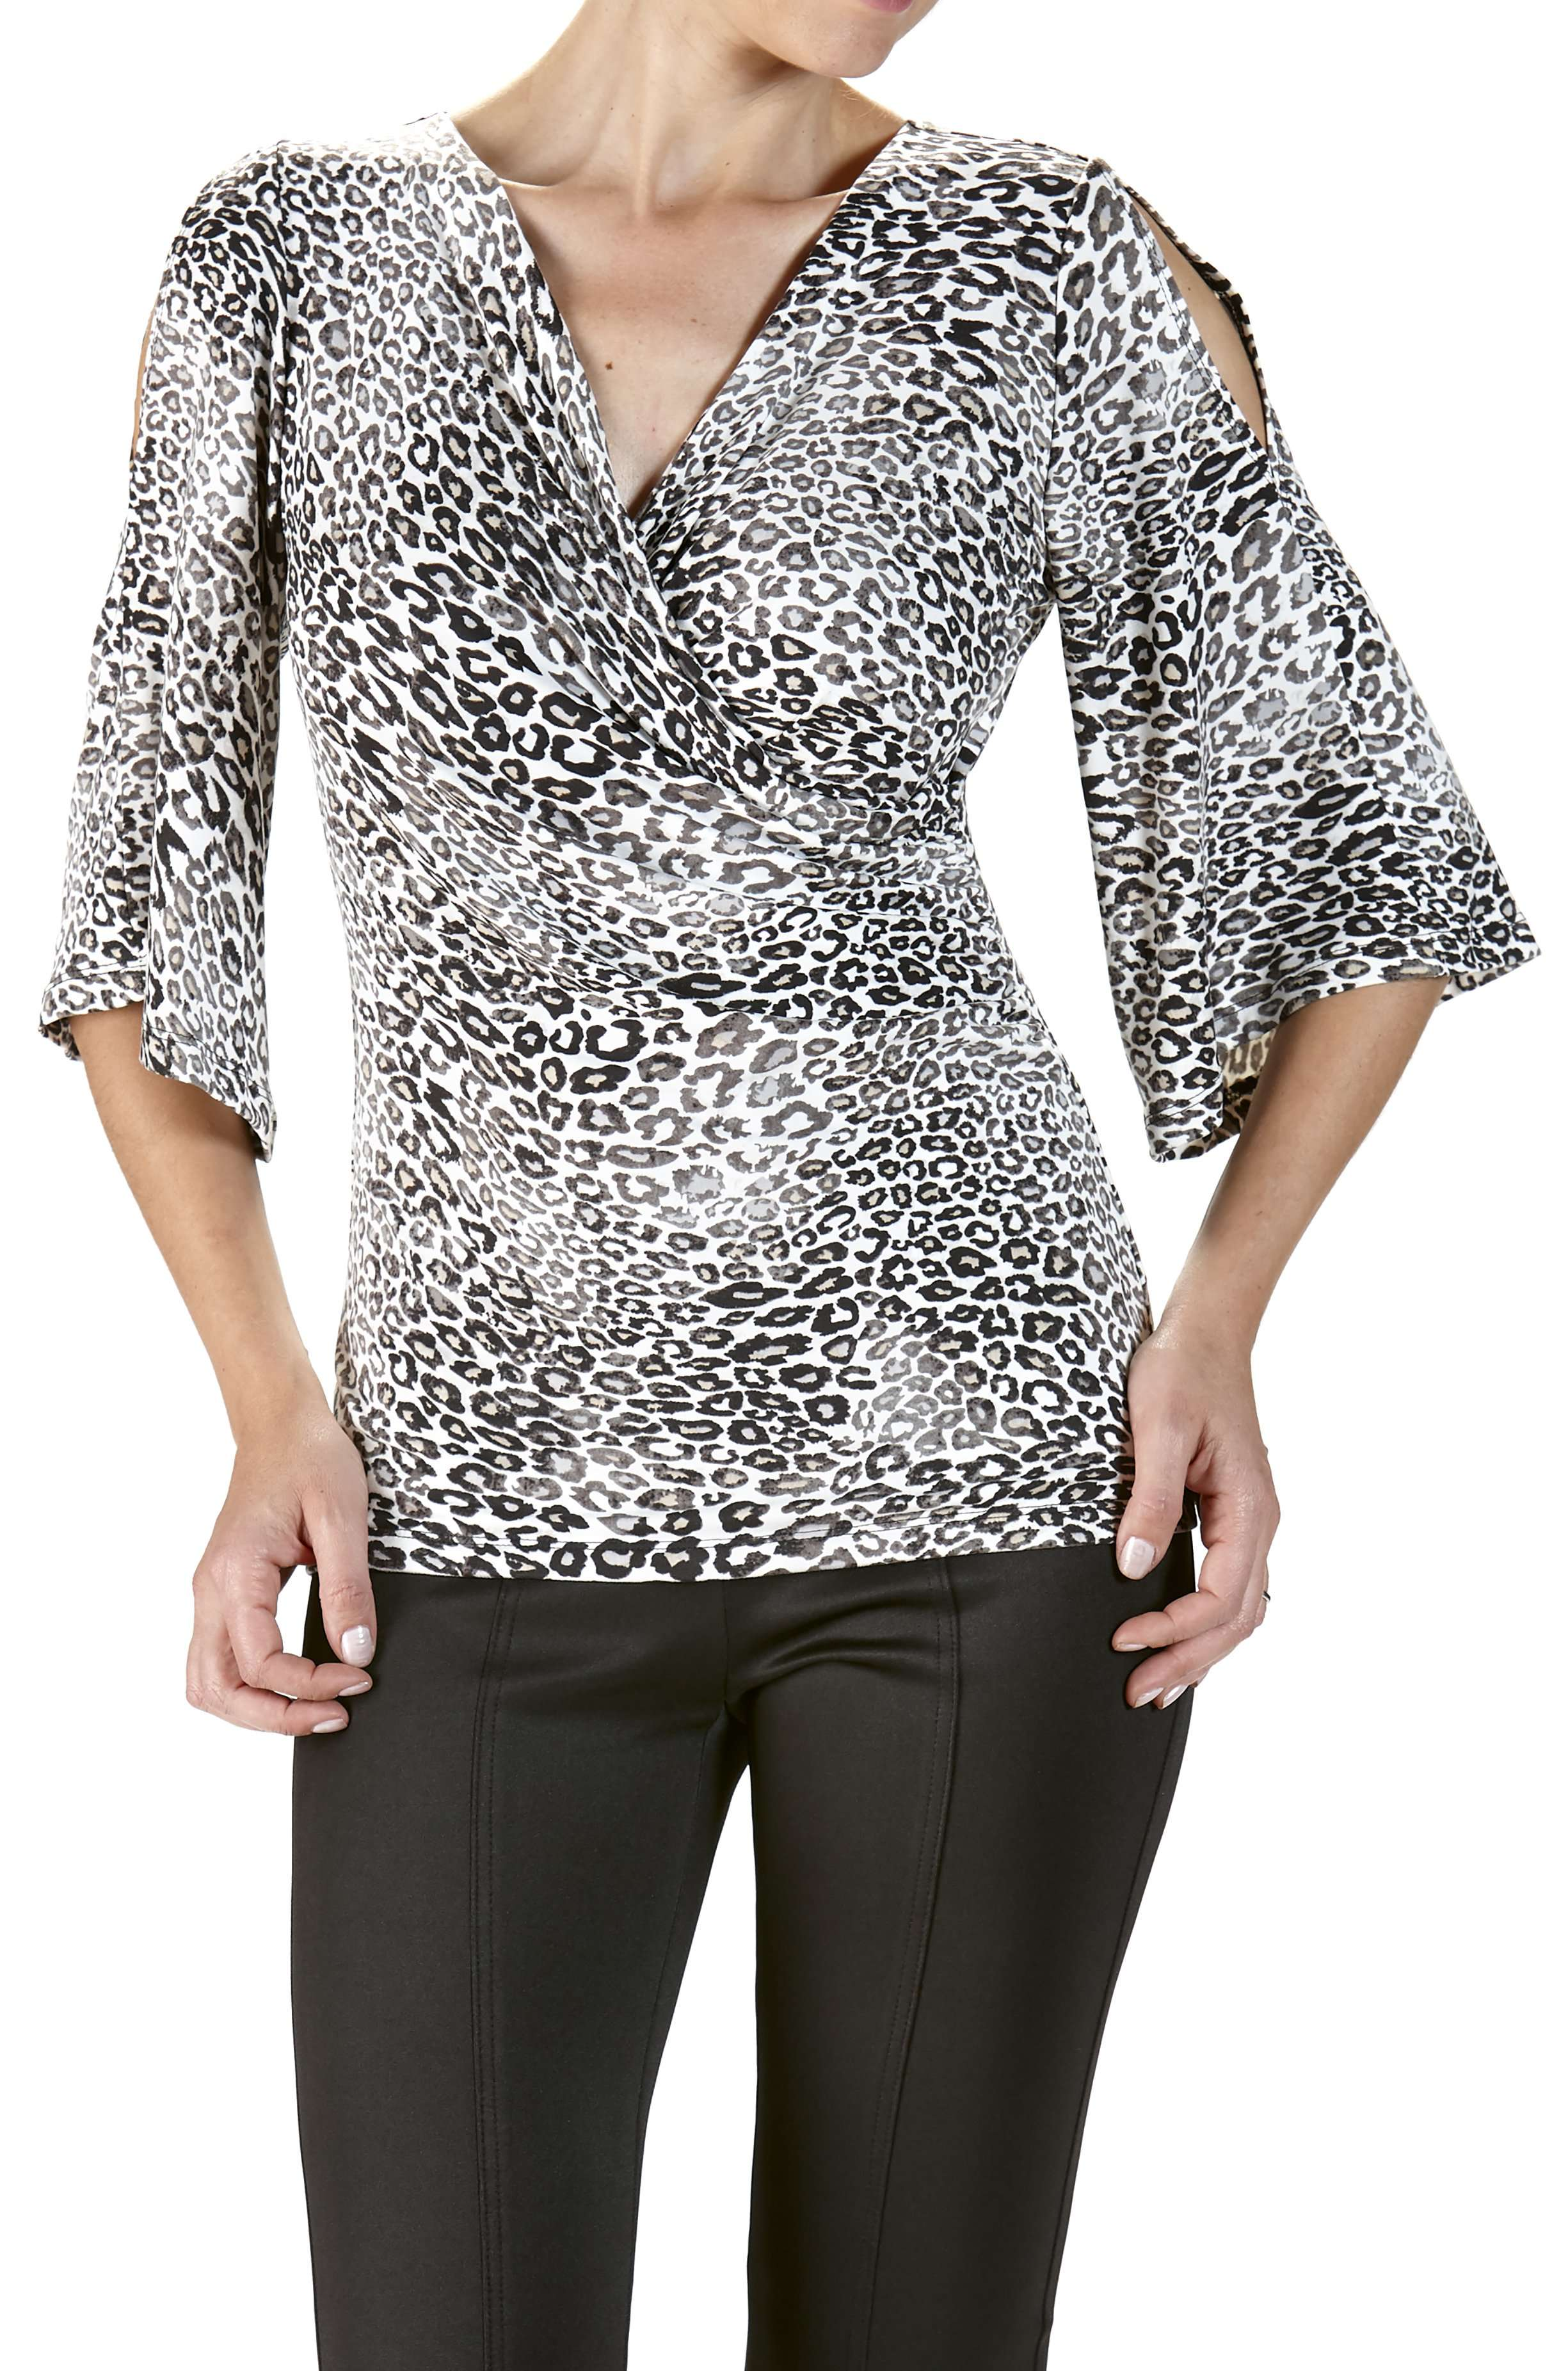 Animal Print Wrap Front Top with Open Sleeve - Yvonne Marie